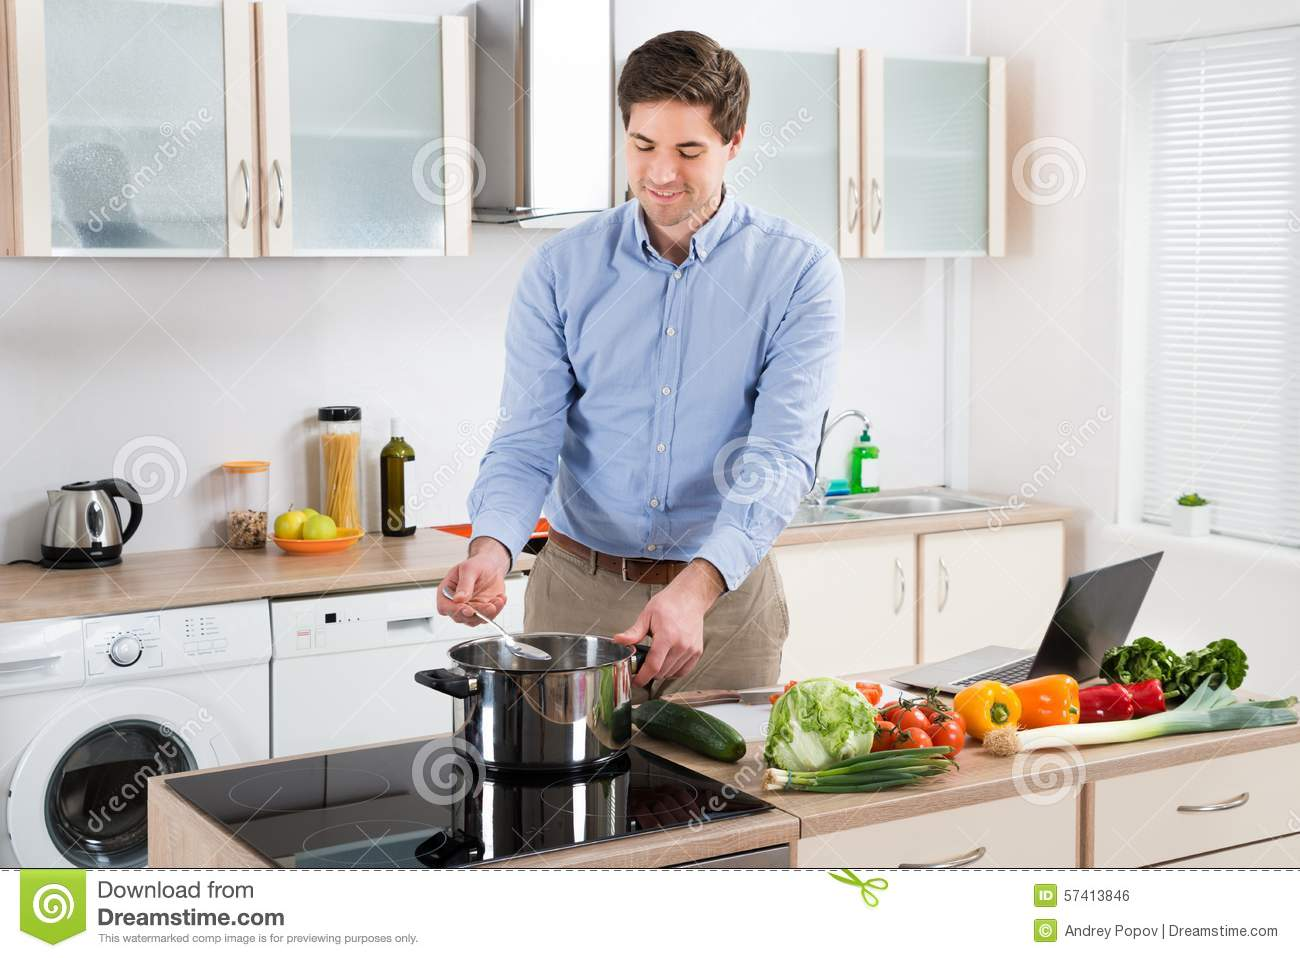 Man Cooking Food In Kitchen Stock Photo - Image: 57413846